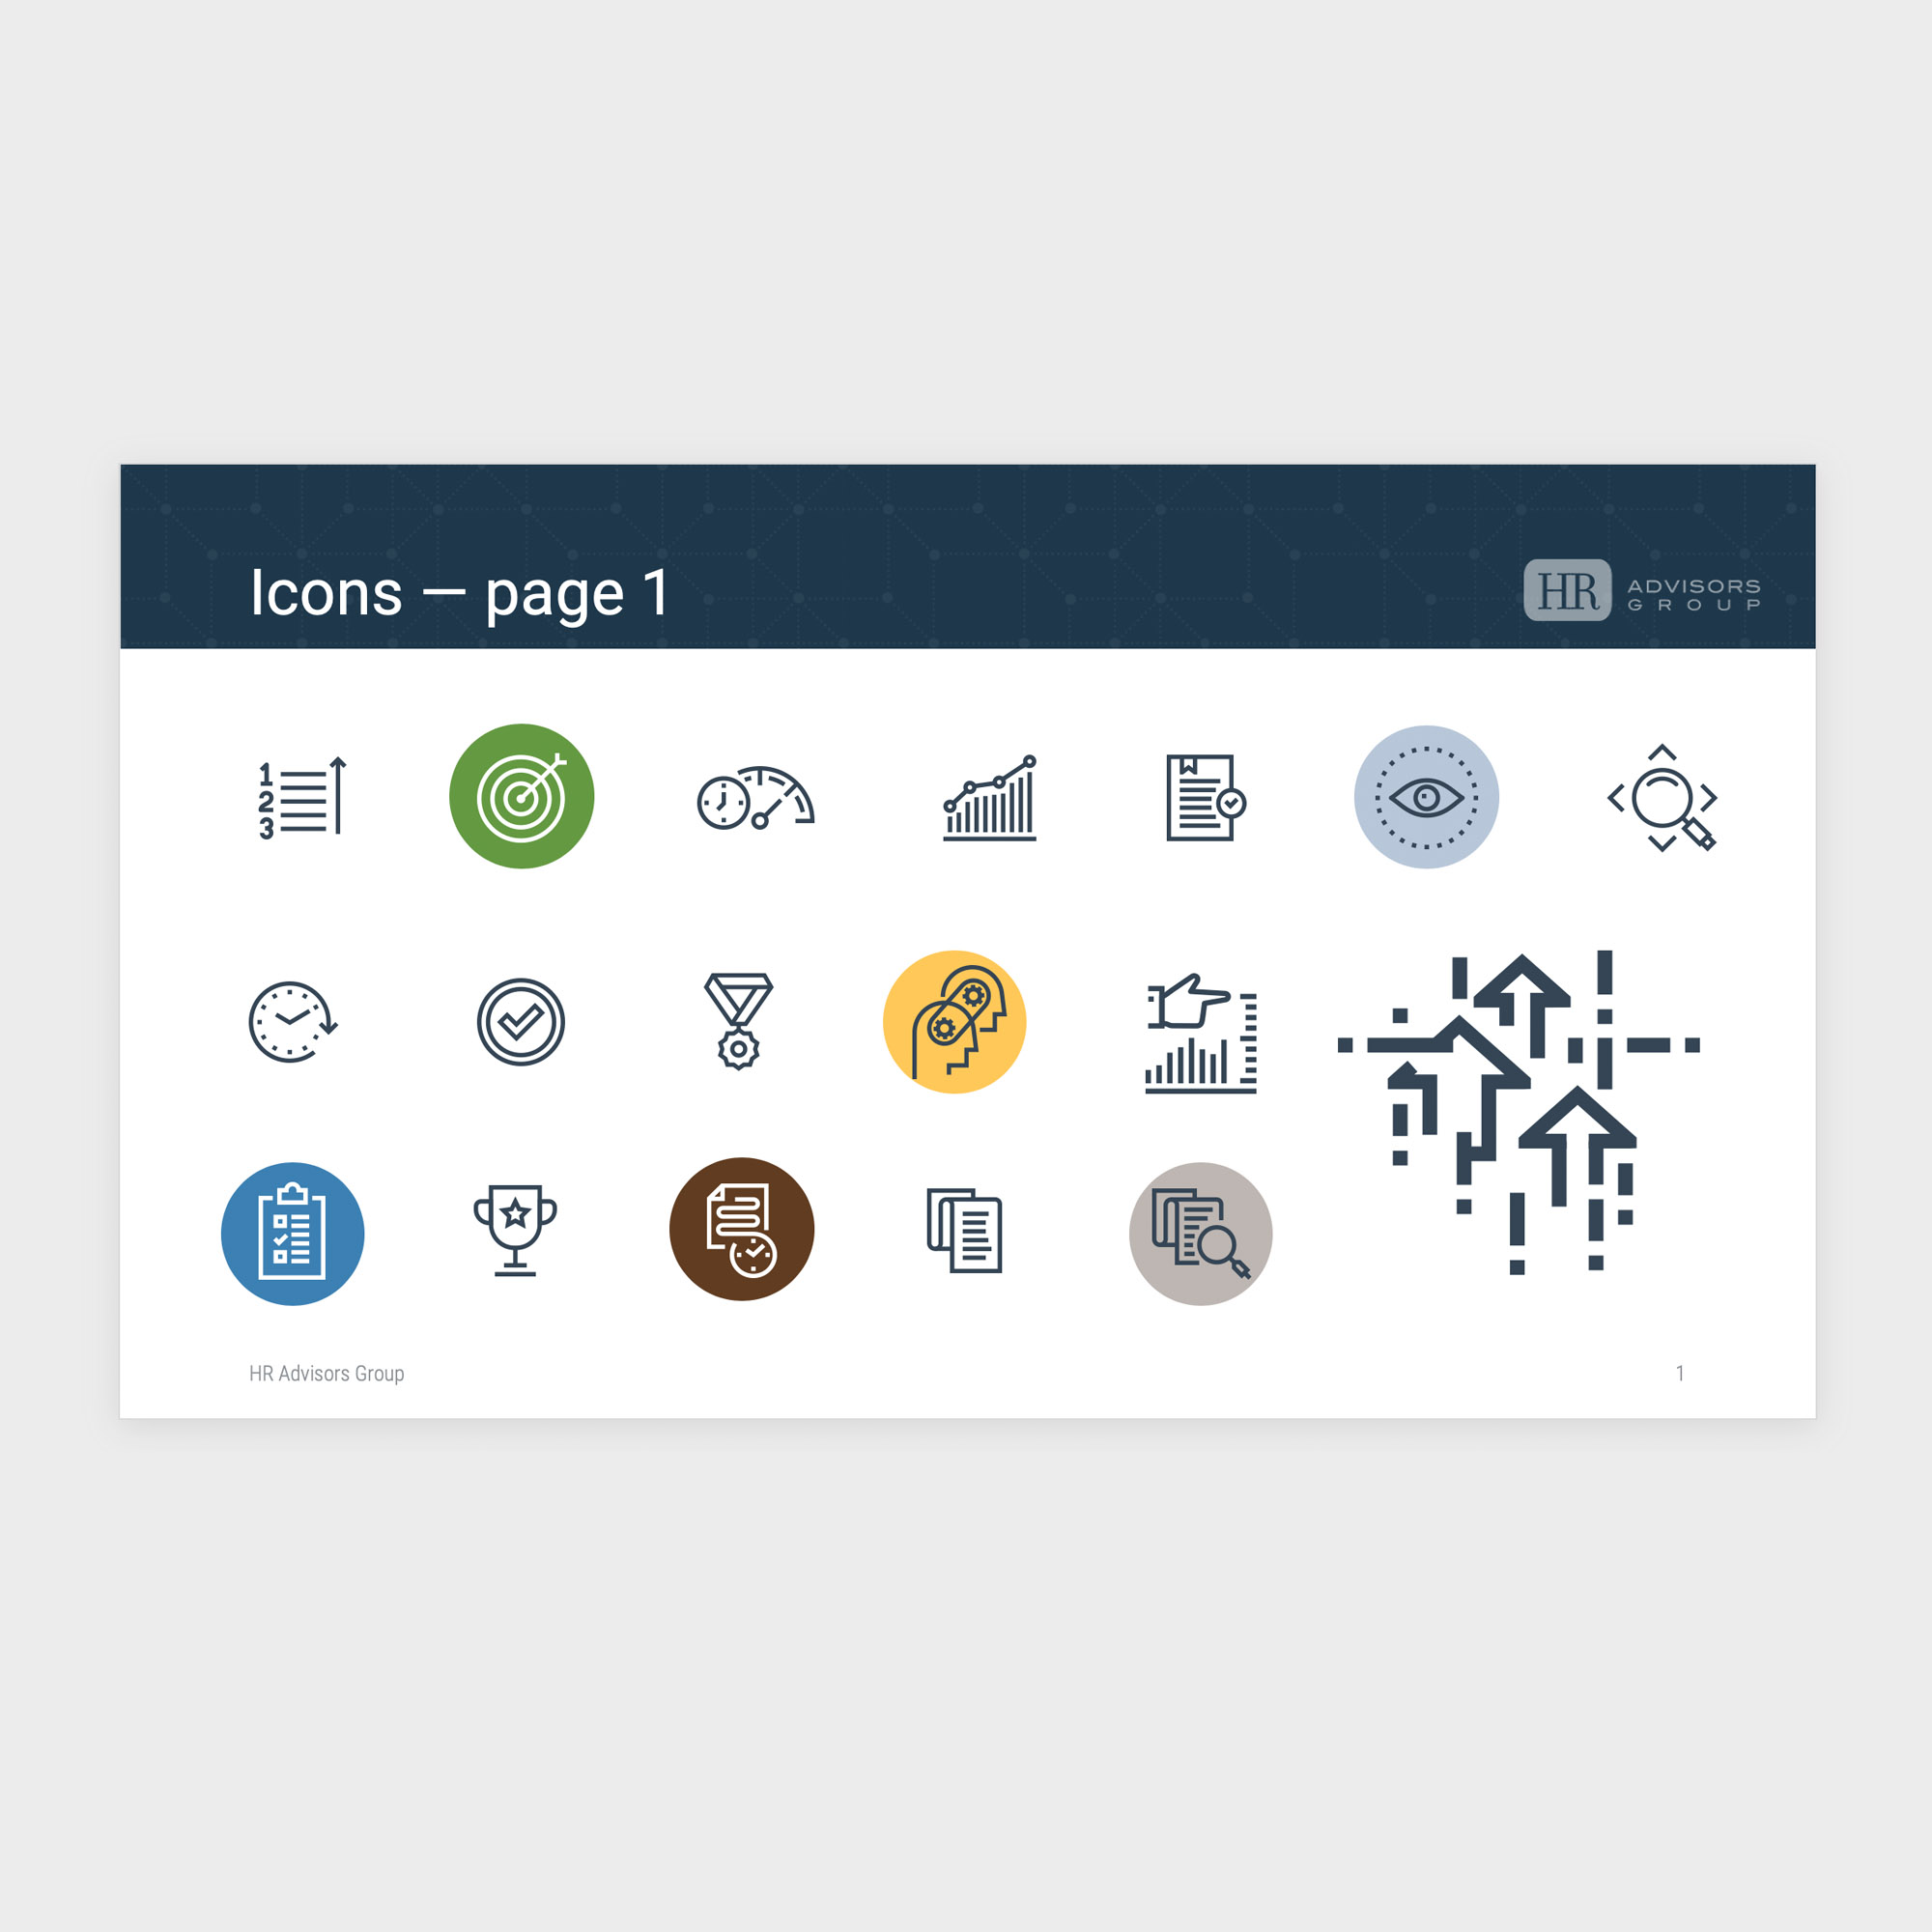 HR Advisors Group icon library